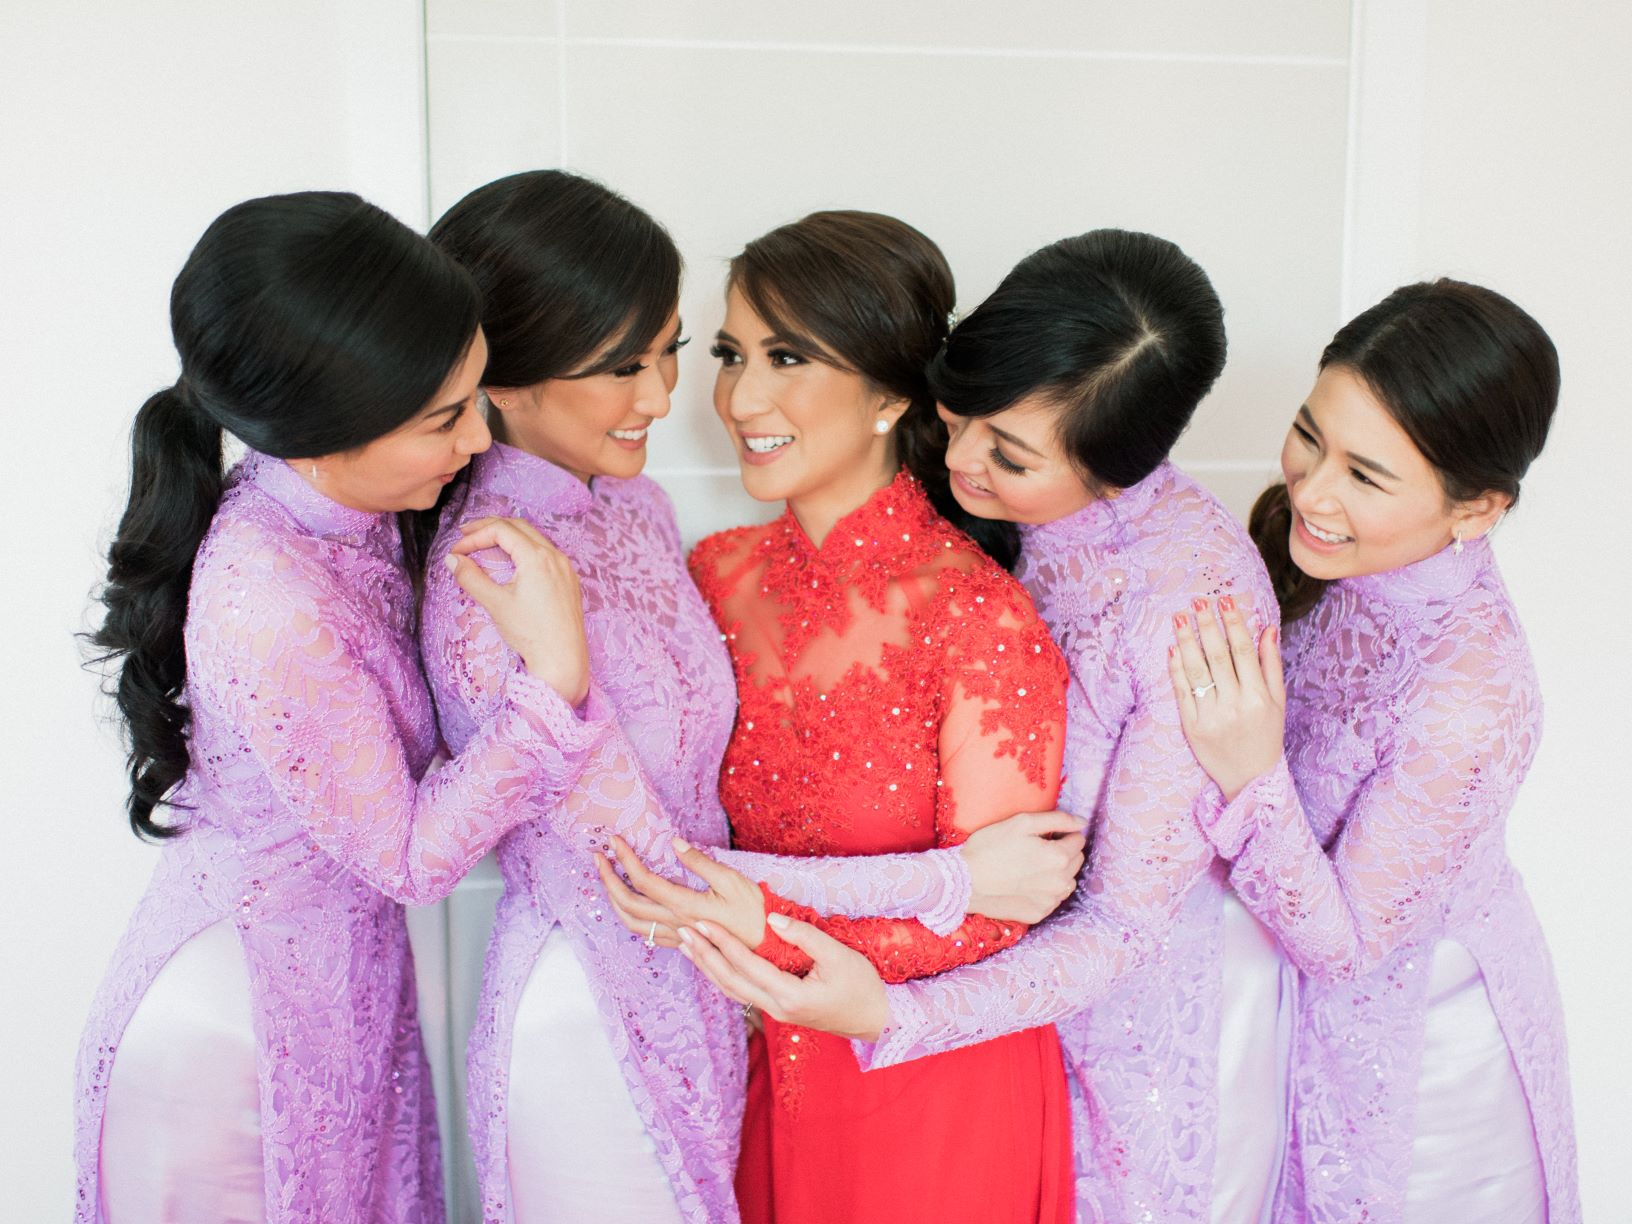 Bridesmaid Ao Dai Photo 22